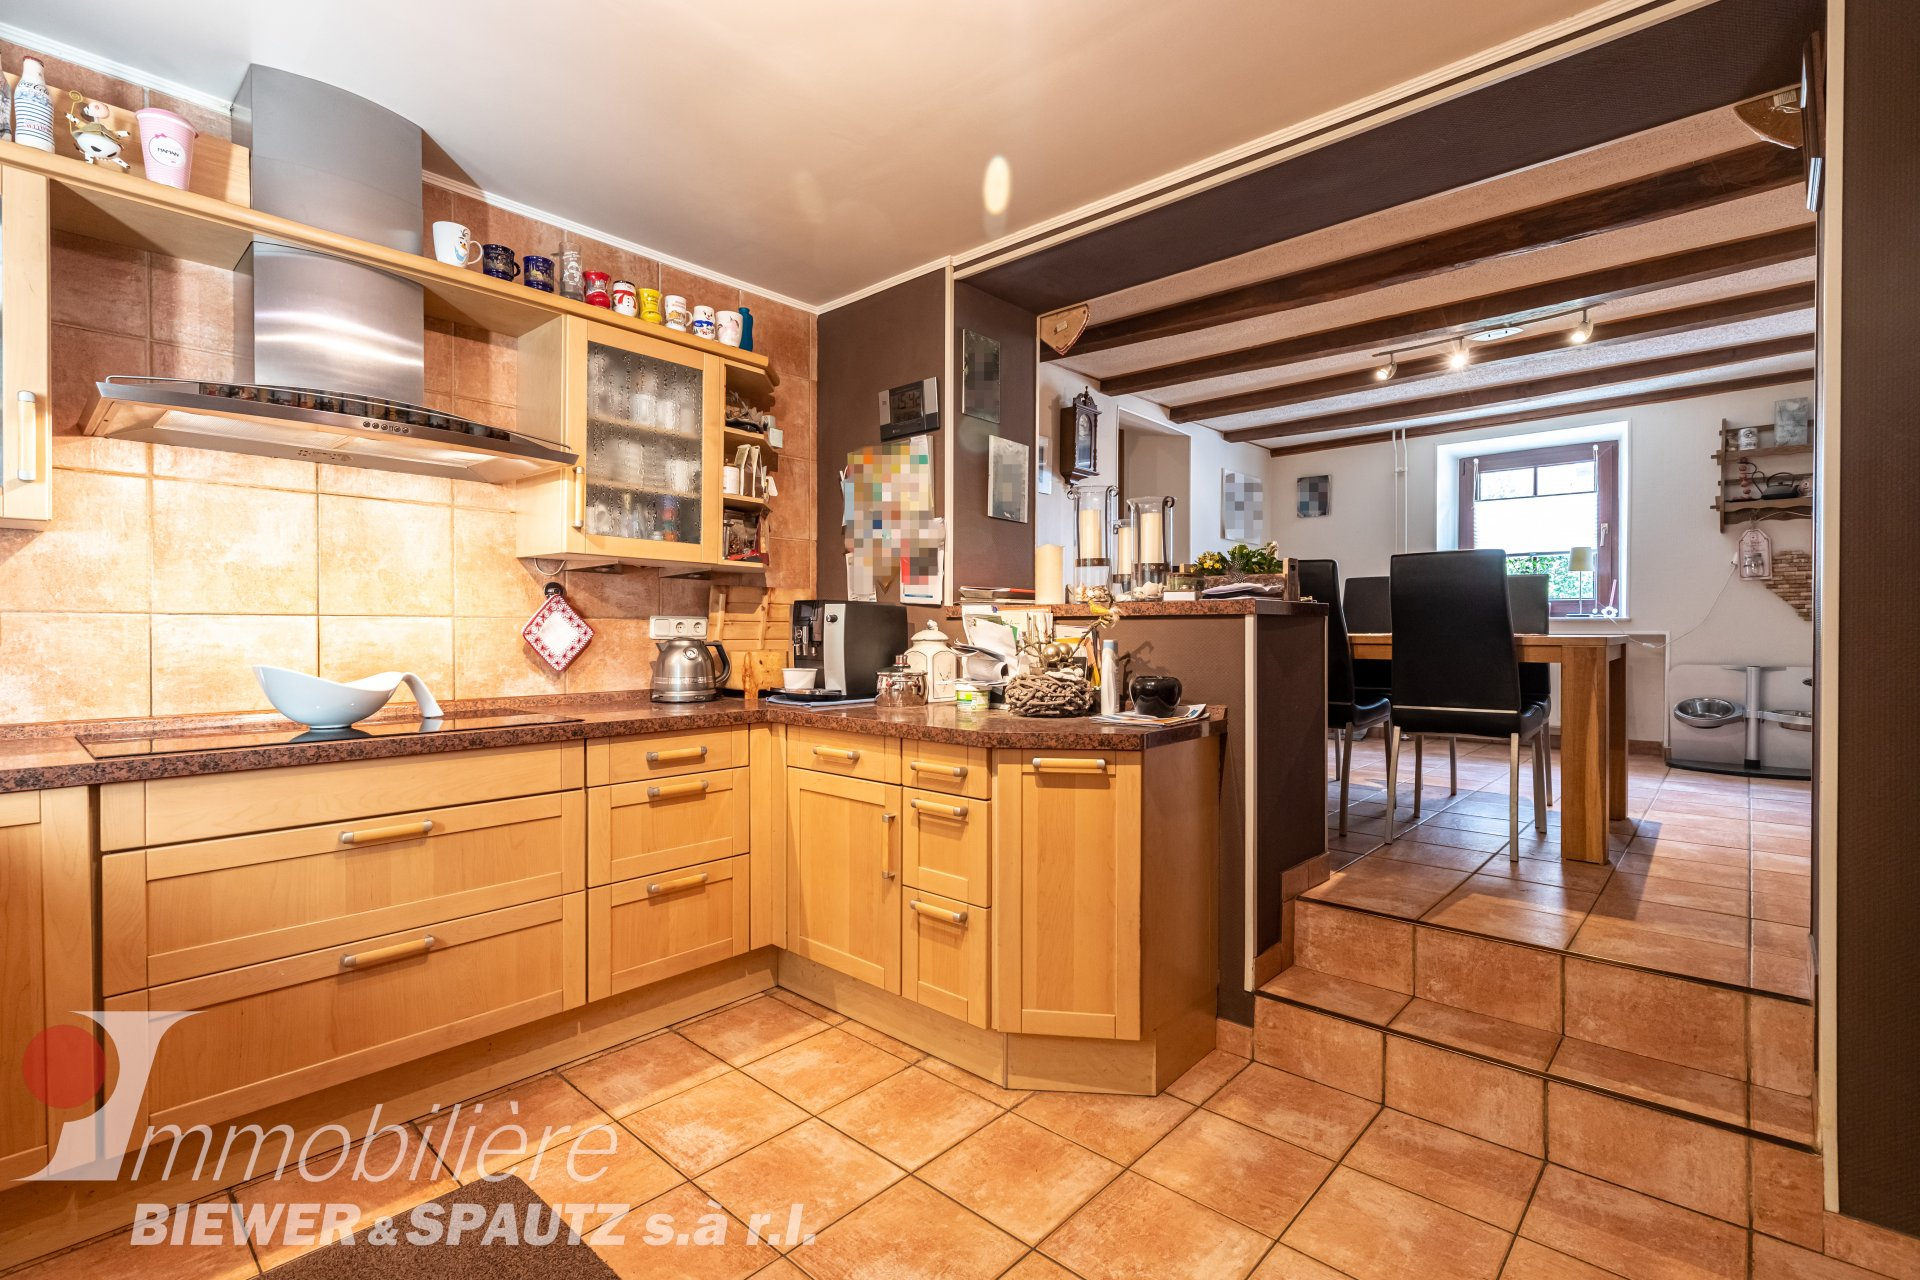 TO SELL - house with 6 bedrooms in Bourglinster